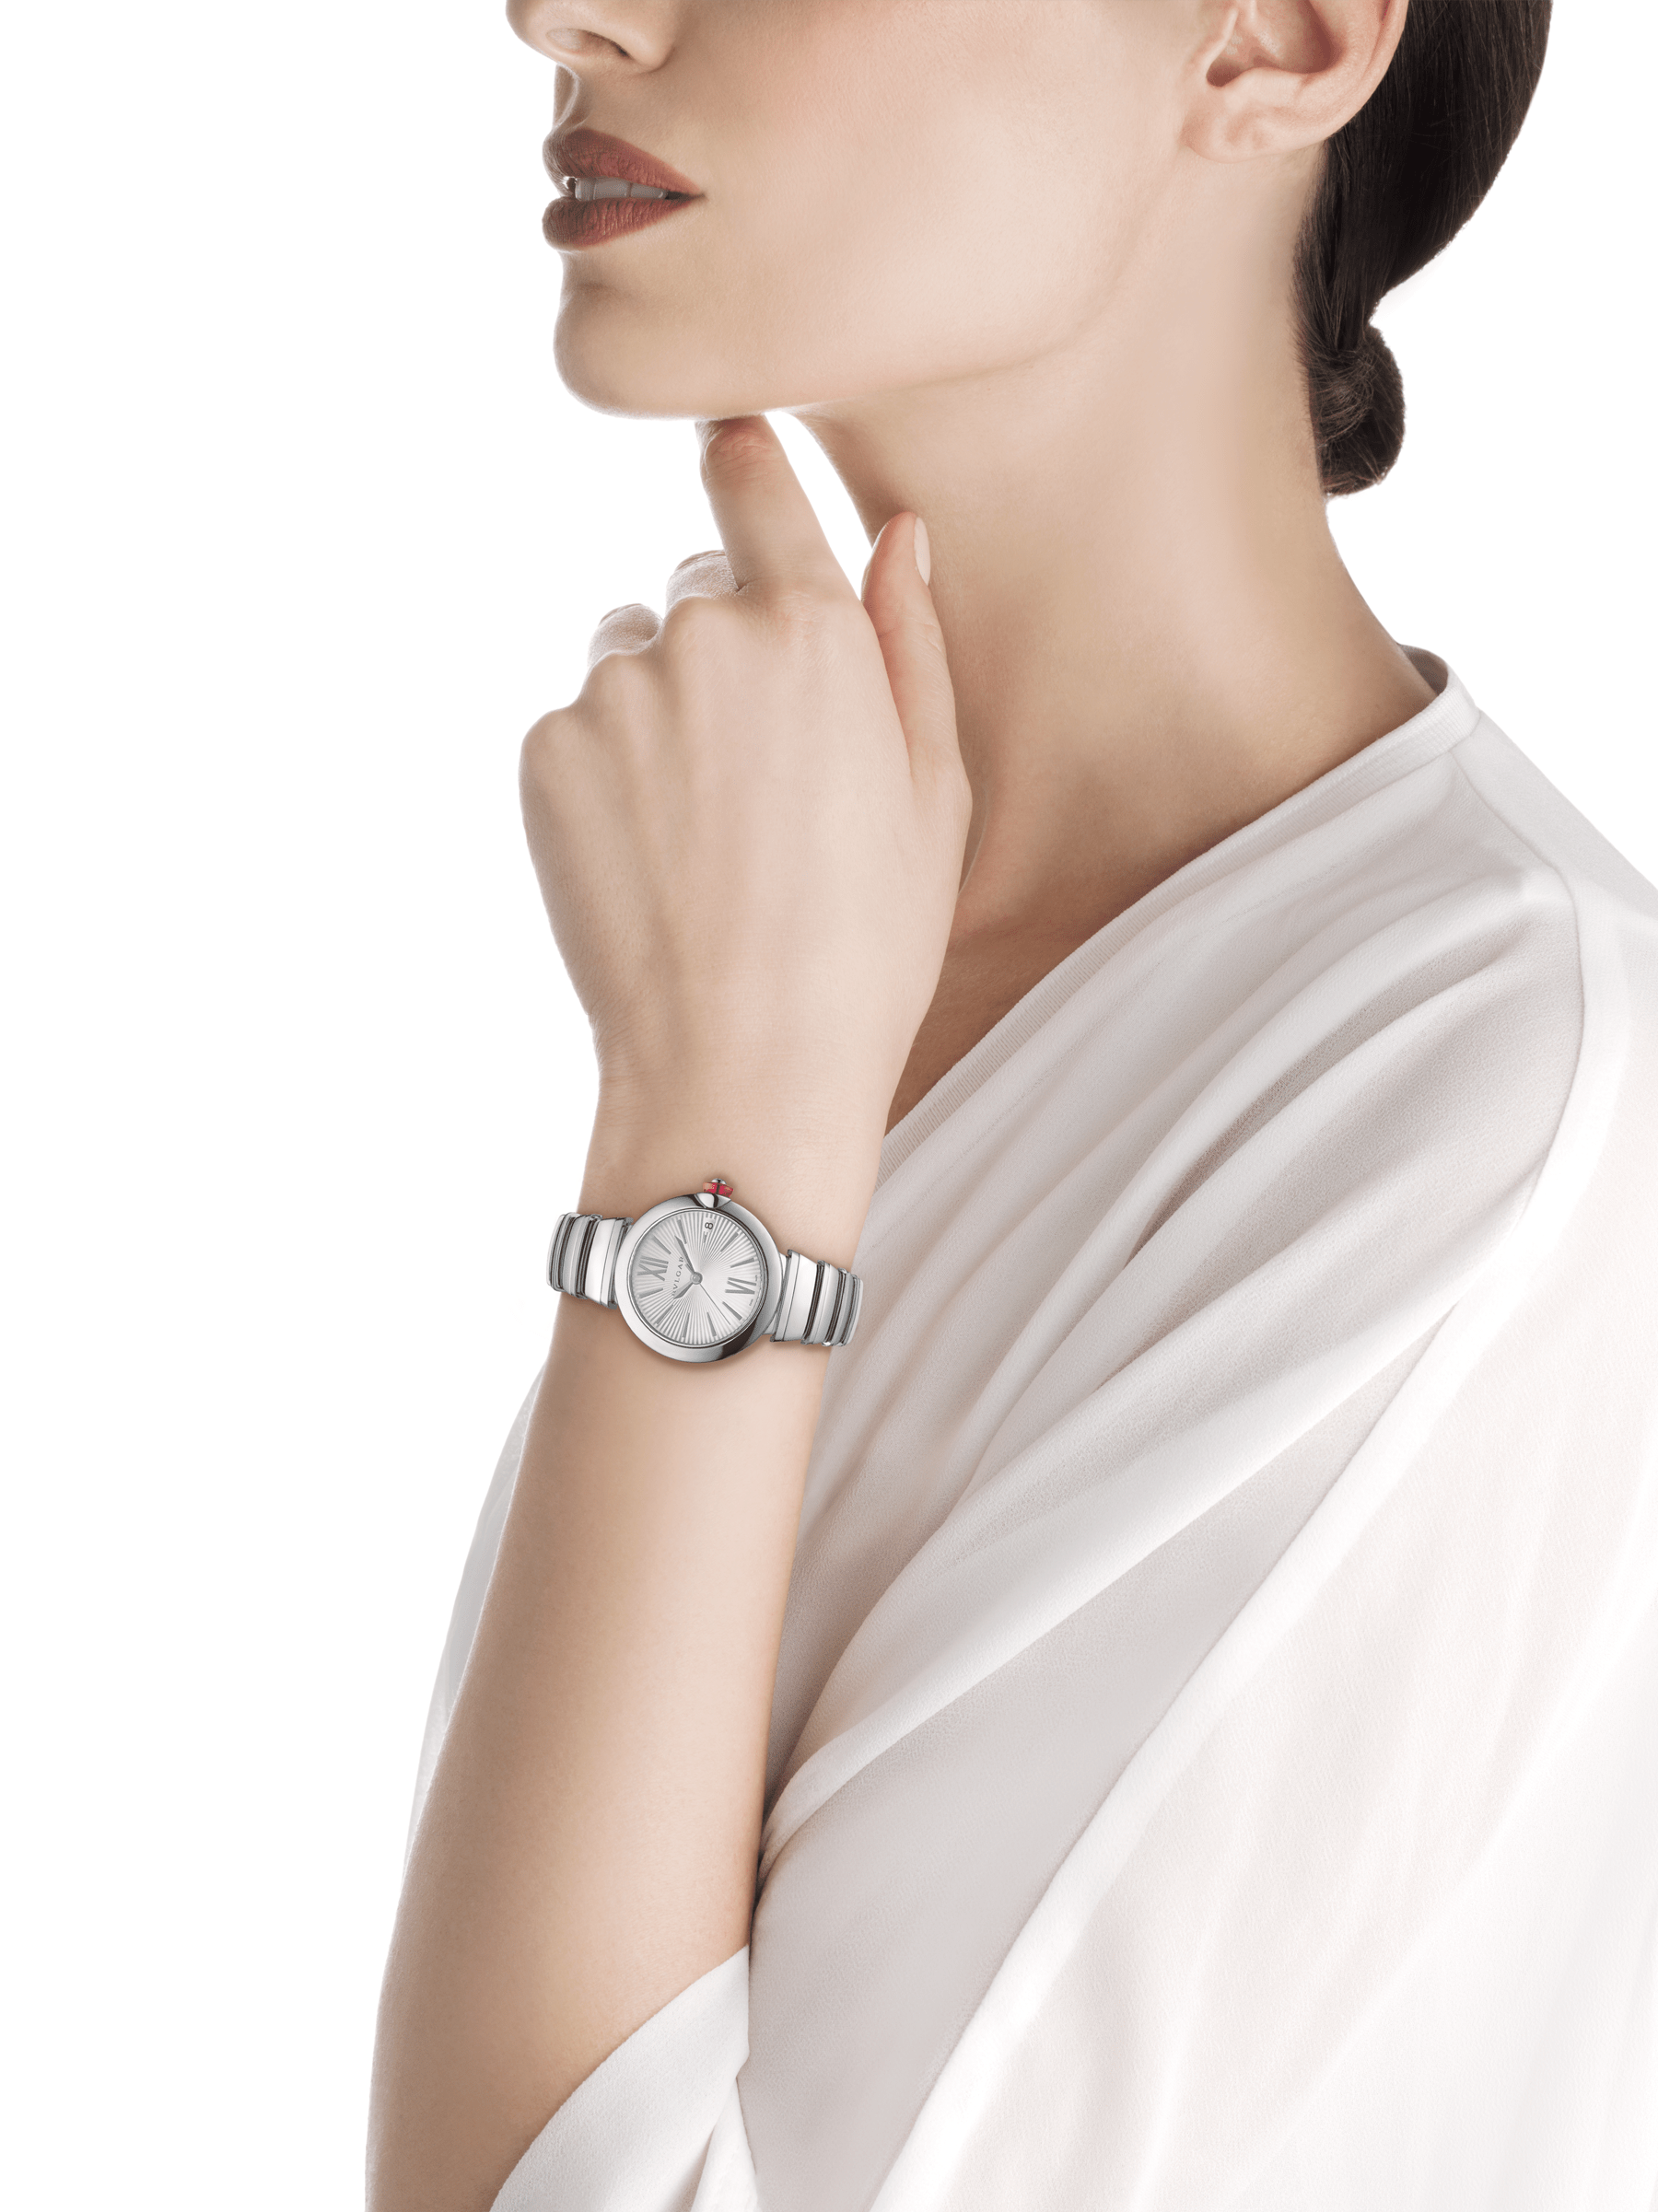 LVCEA watch in stainless steel case and bracelet, with silver opaline dial. 102219 image 4